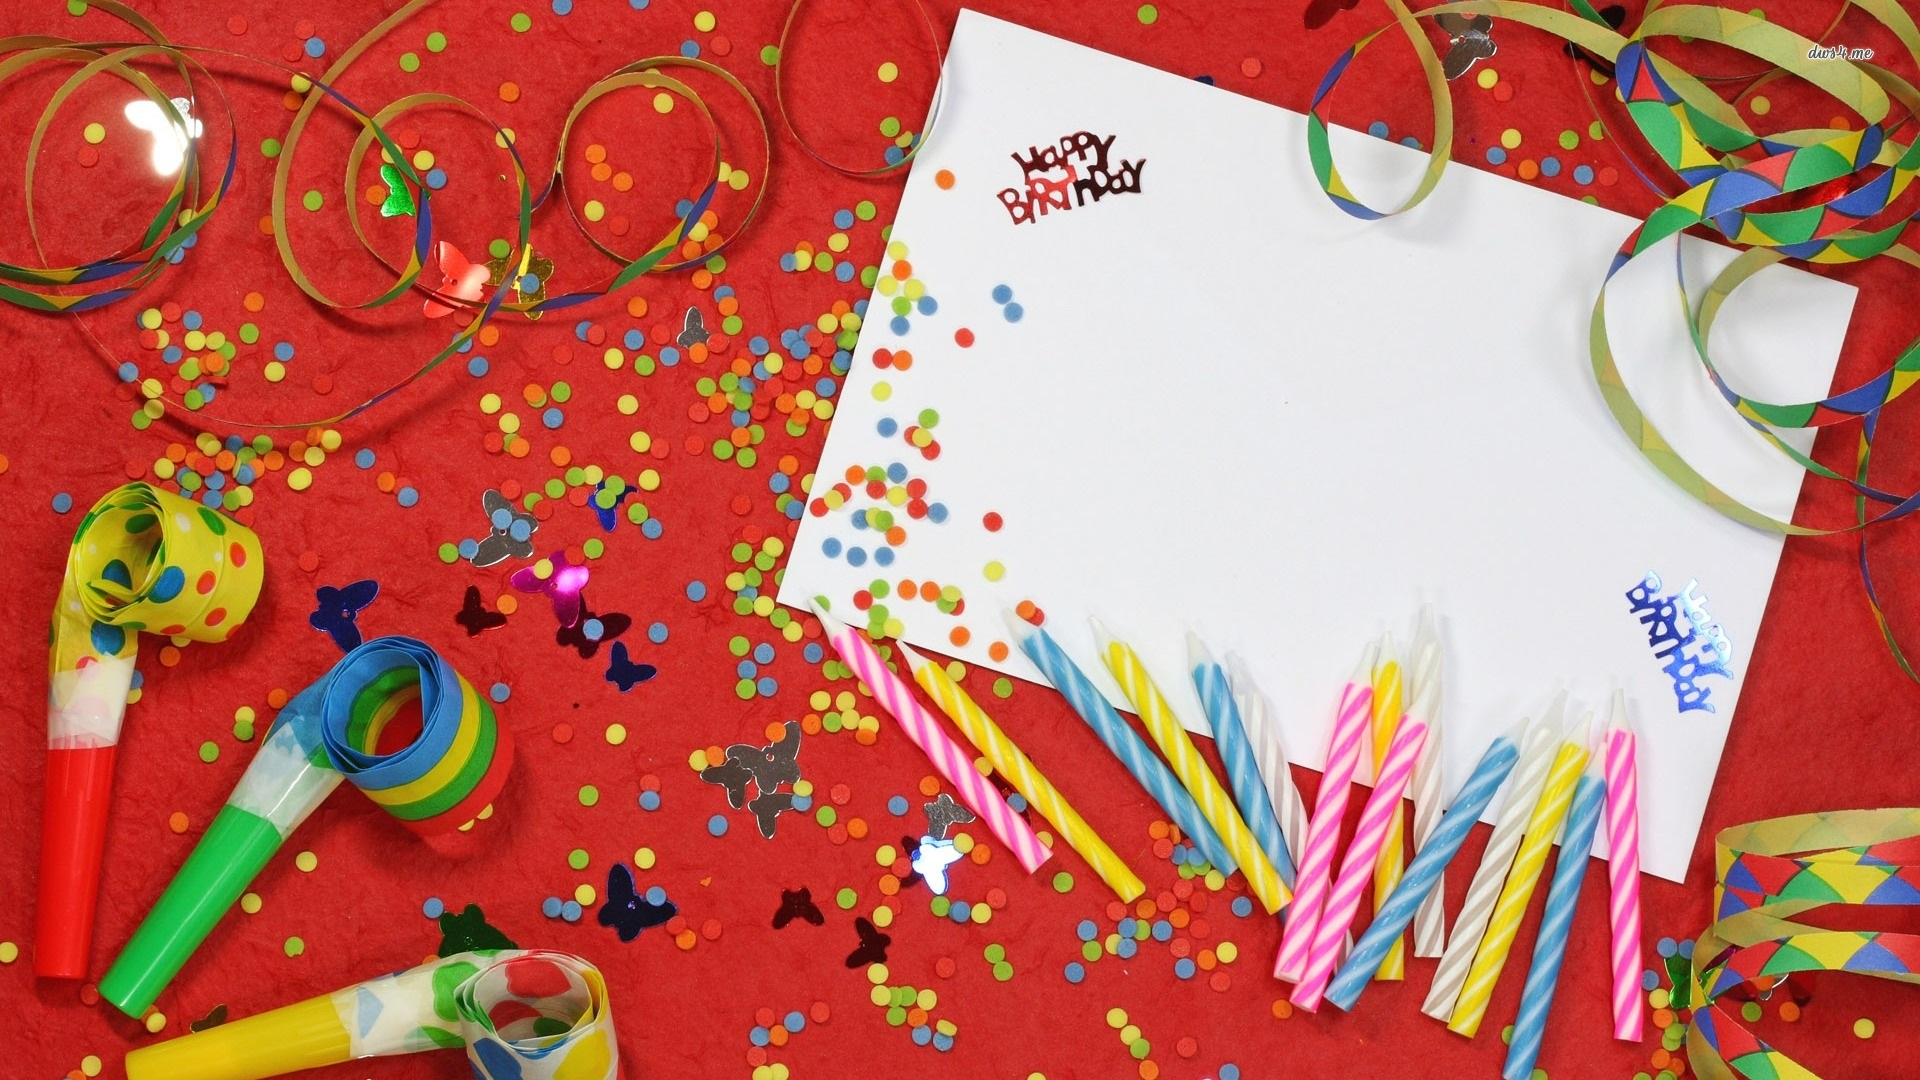 birthday wallpaper design ; Birthday-wallpapers-HD-Collections-hd